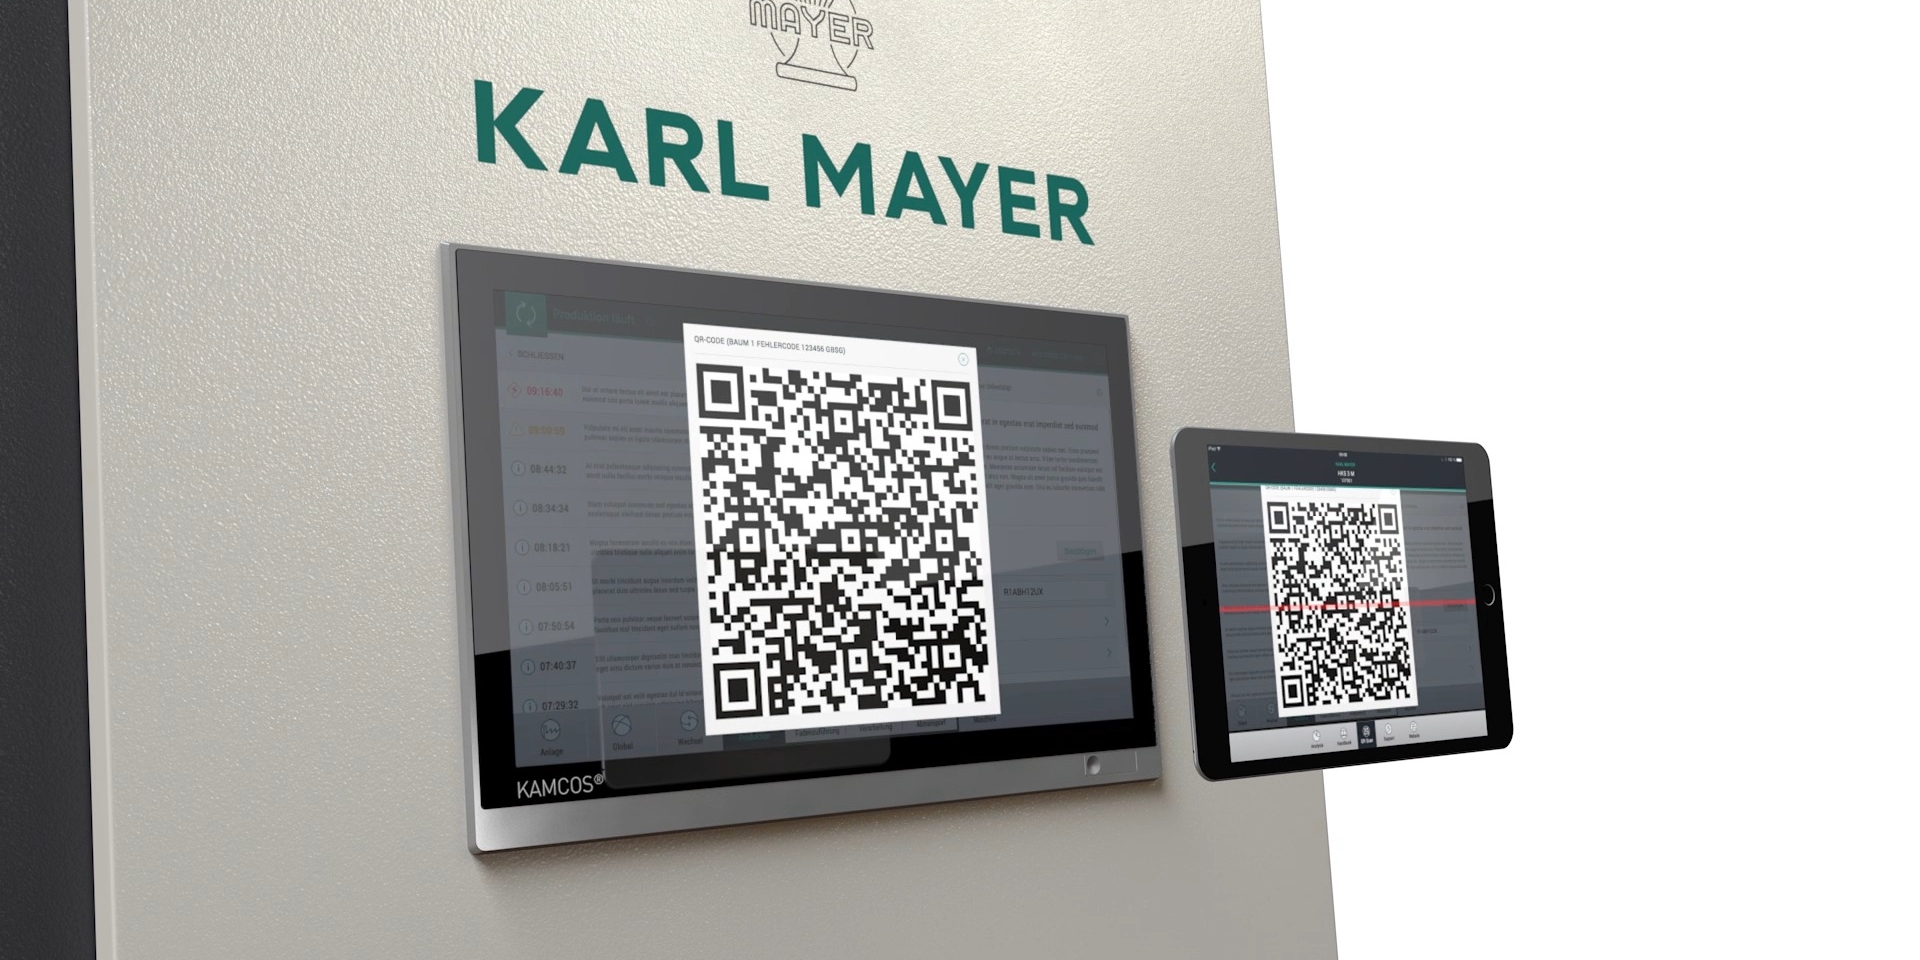 karl mayer mobile app